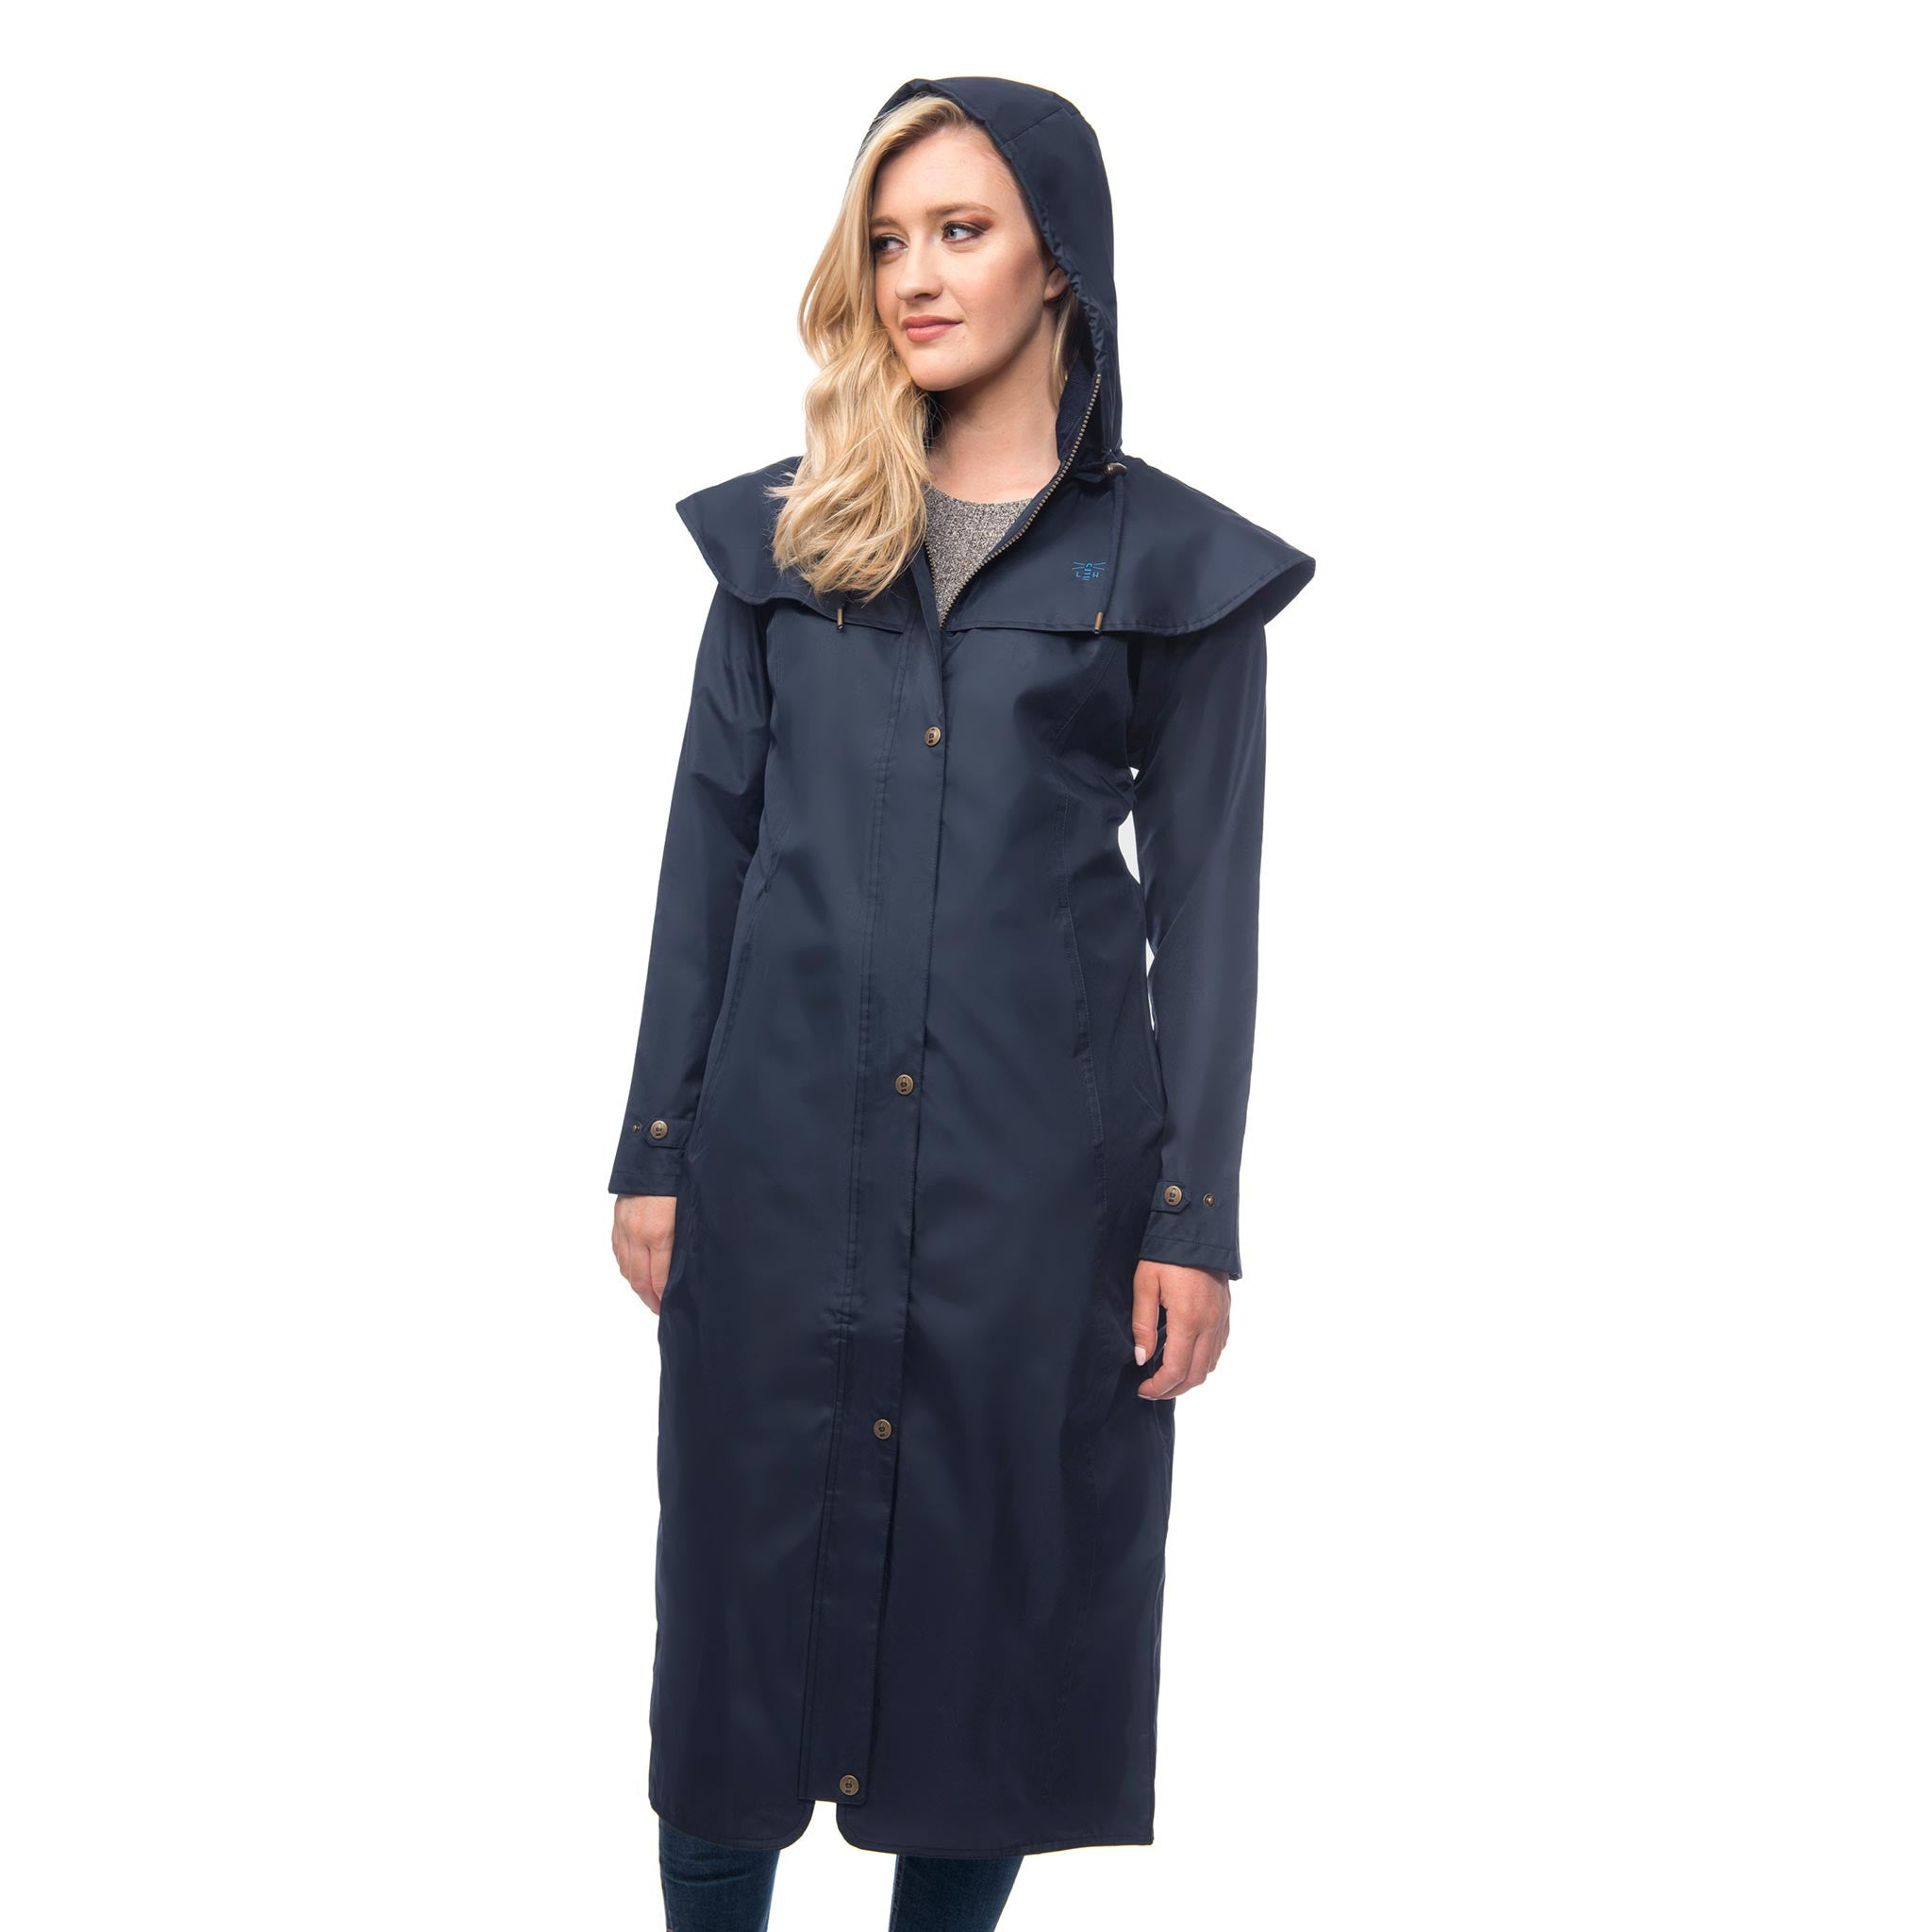 Lighthouse Womens Outback Full Length Waterproof Raincoat in Navy. Zipped and buttoned. Hood up.